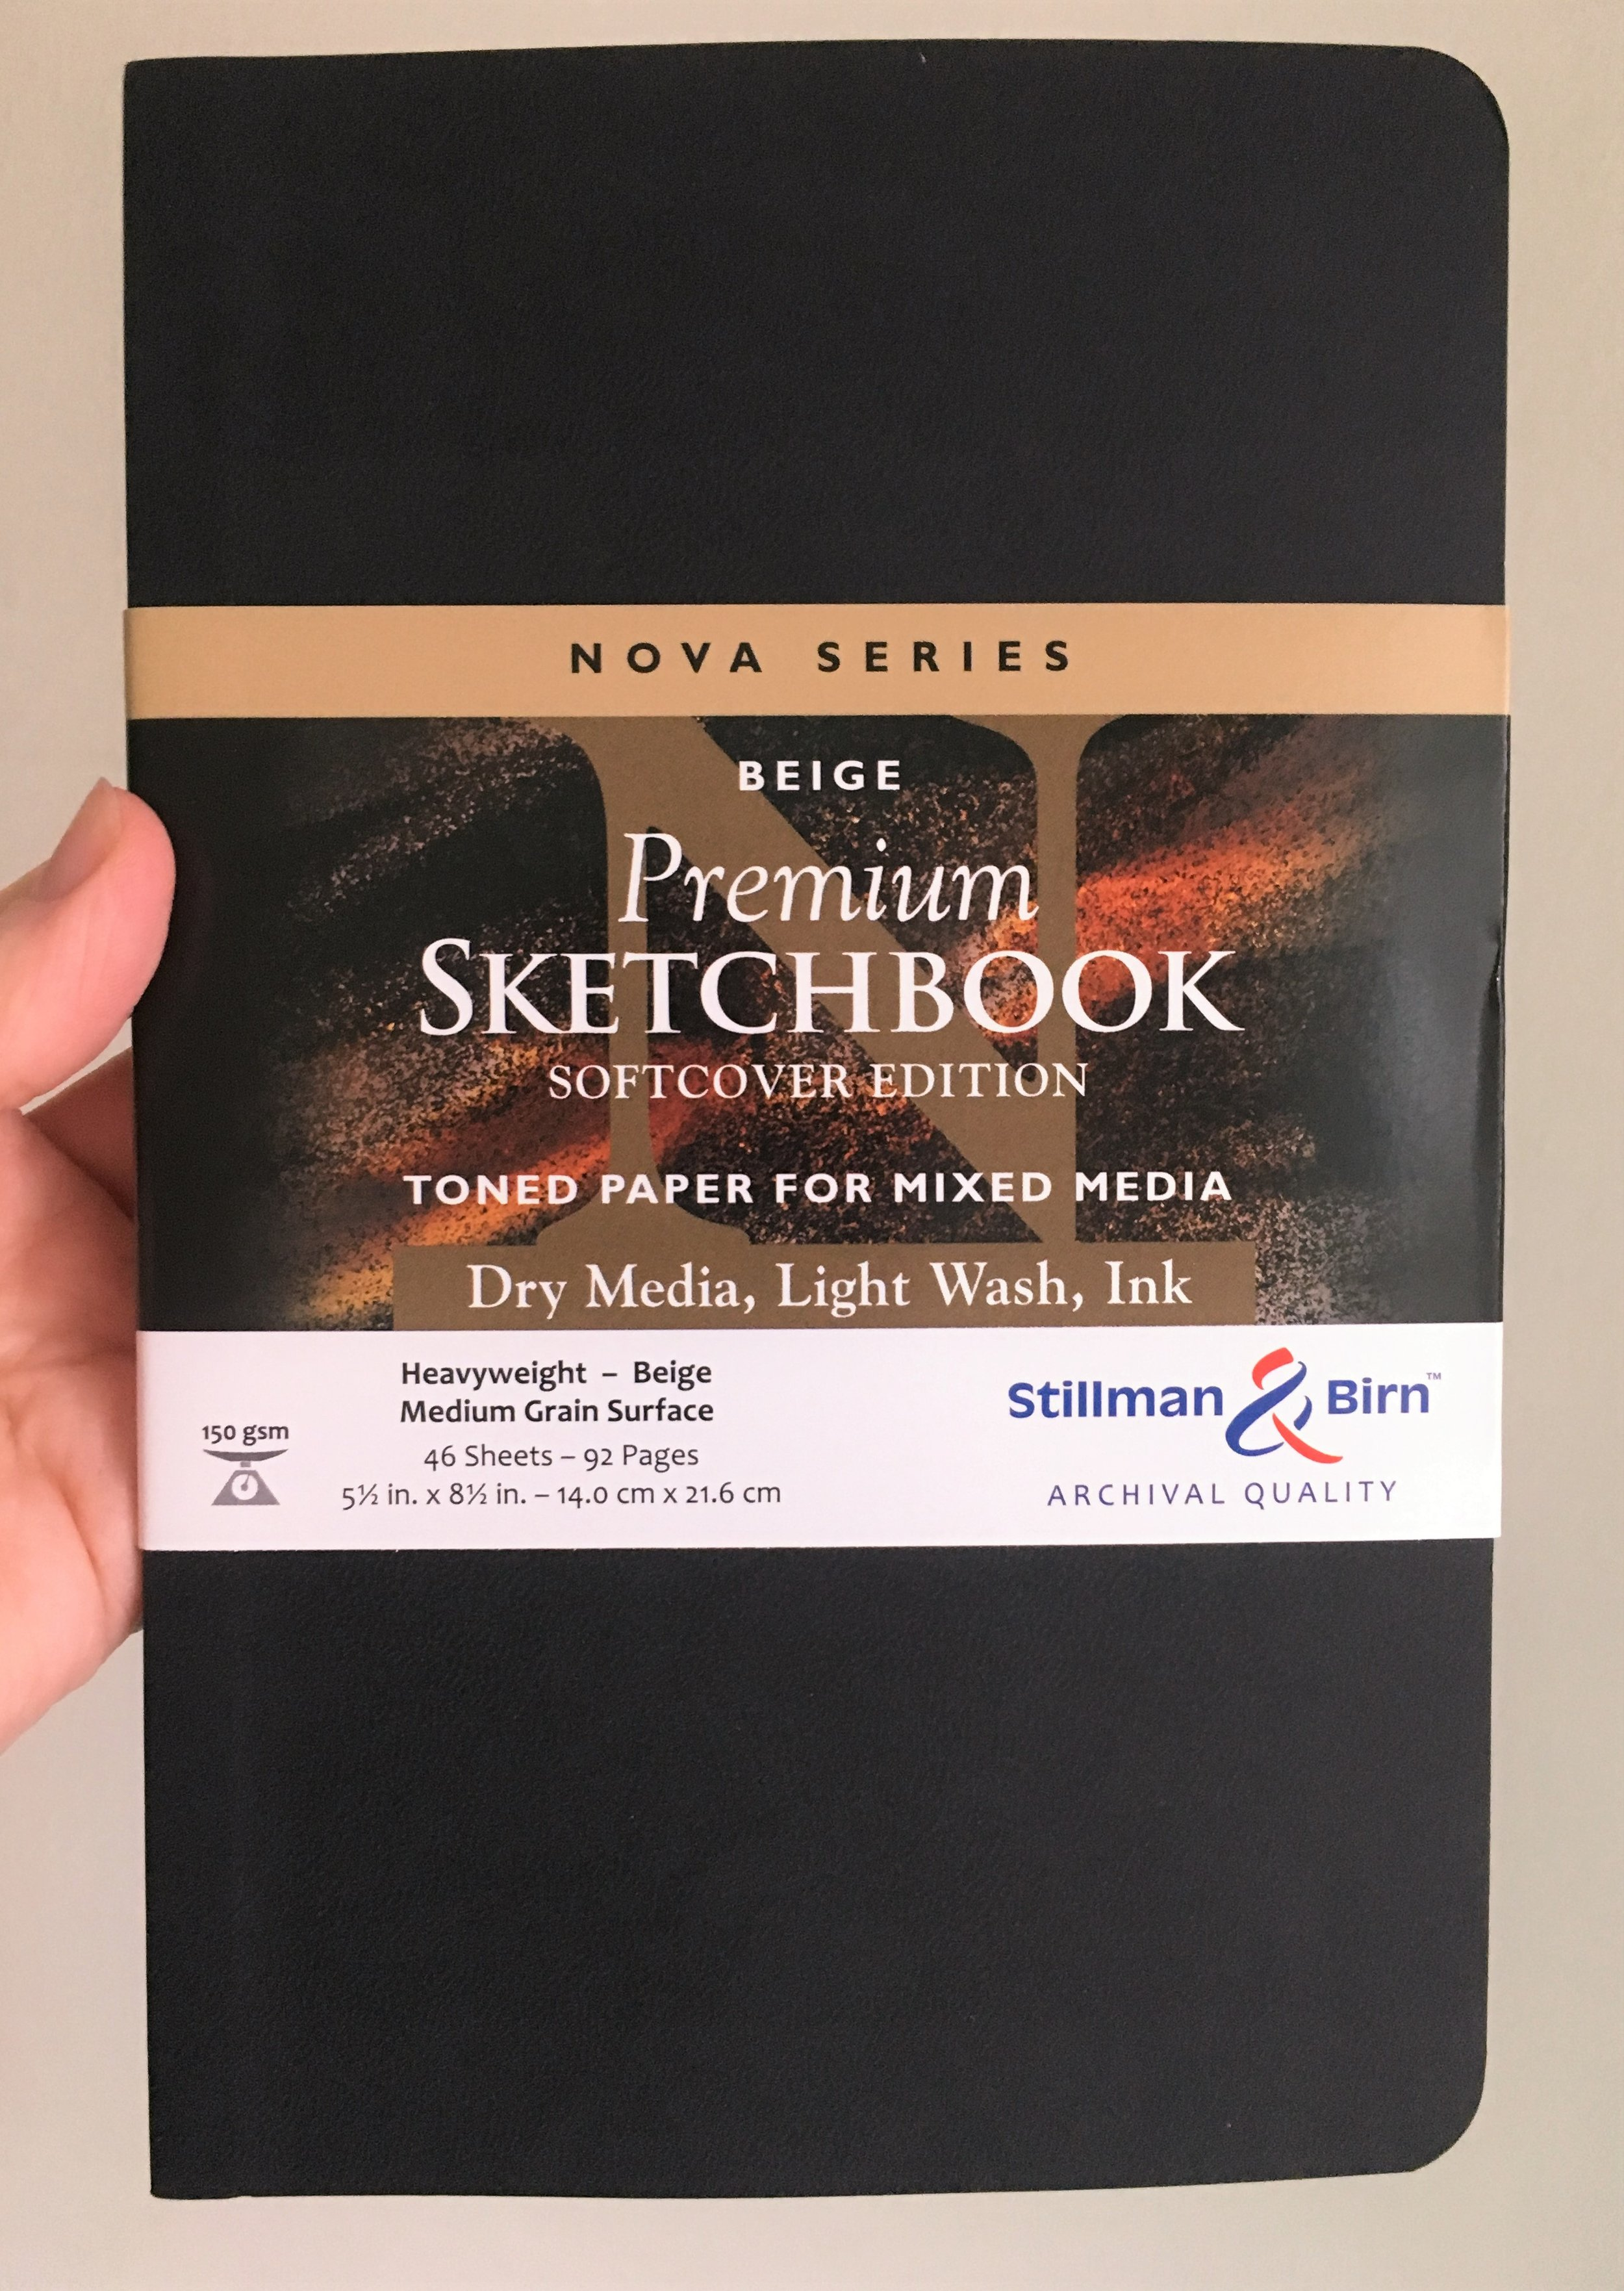 Stillman & Birn Nova Sketchbook Review